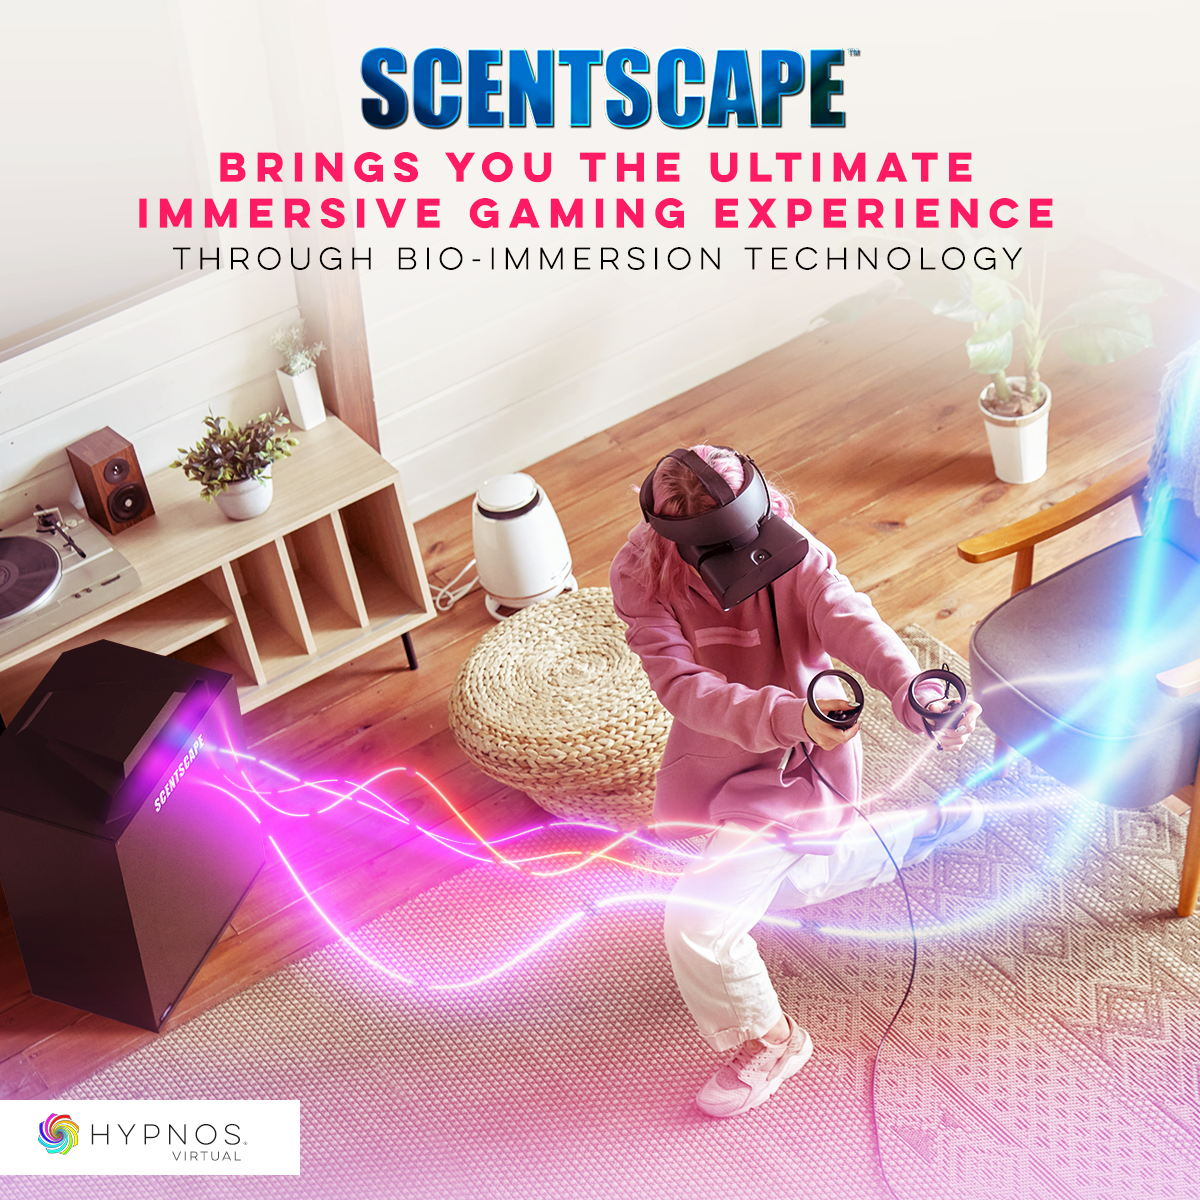 Hypnos has built the cross-platform infrastructure and trade-secret coding functionality for sophisticated real-time game play movements. The Scentscape software can tell where the players head and hands to continually adjust aroma volumes and triggers within the 3D CGI worlds of Video Games. Hypnos has built the cross-platform infrastructure and trade-secret coding functionality for sophisticated real-time gameplay movements. The Scentscape software reads where the player's head and hands are in 3D space to continually adjust aroma volumes and triggers within the 3D CGI worlds of Video Games.